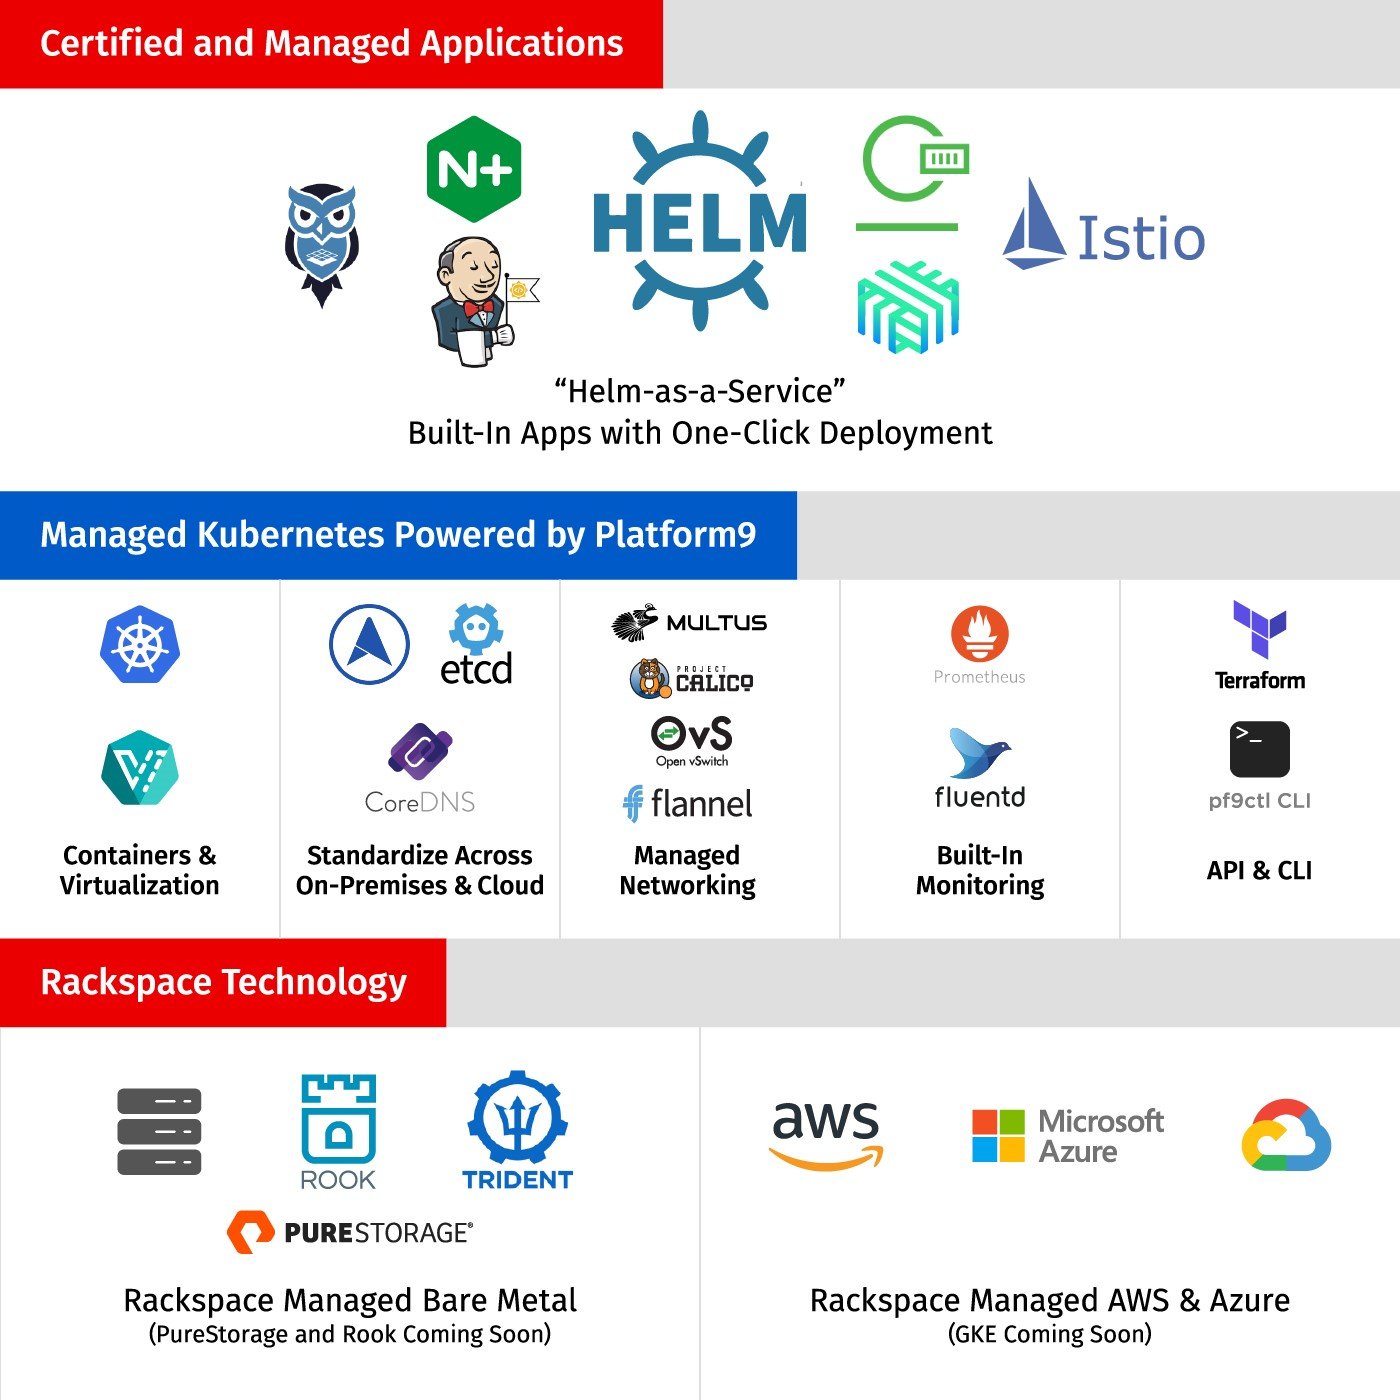 Rackspace Technology Announces Strategic Investment in Platform9 and Launches Rackspace Managed Platform for Kubernetes